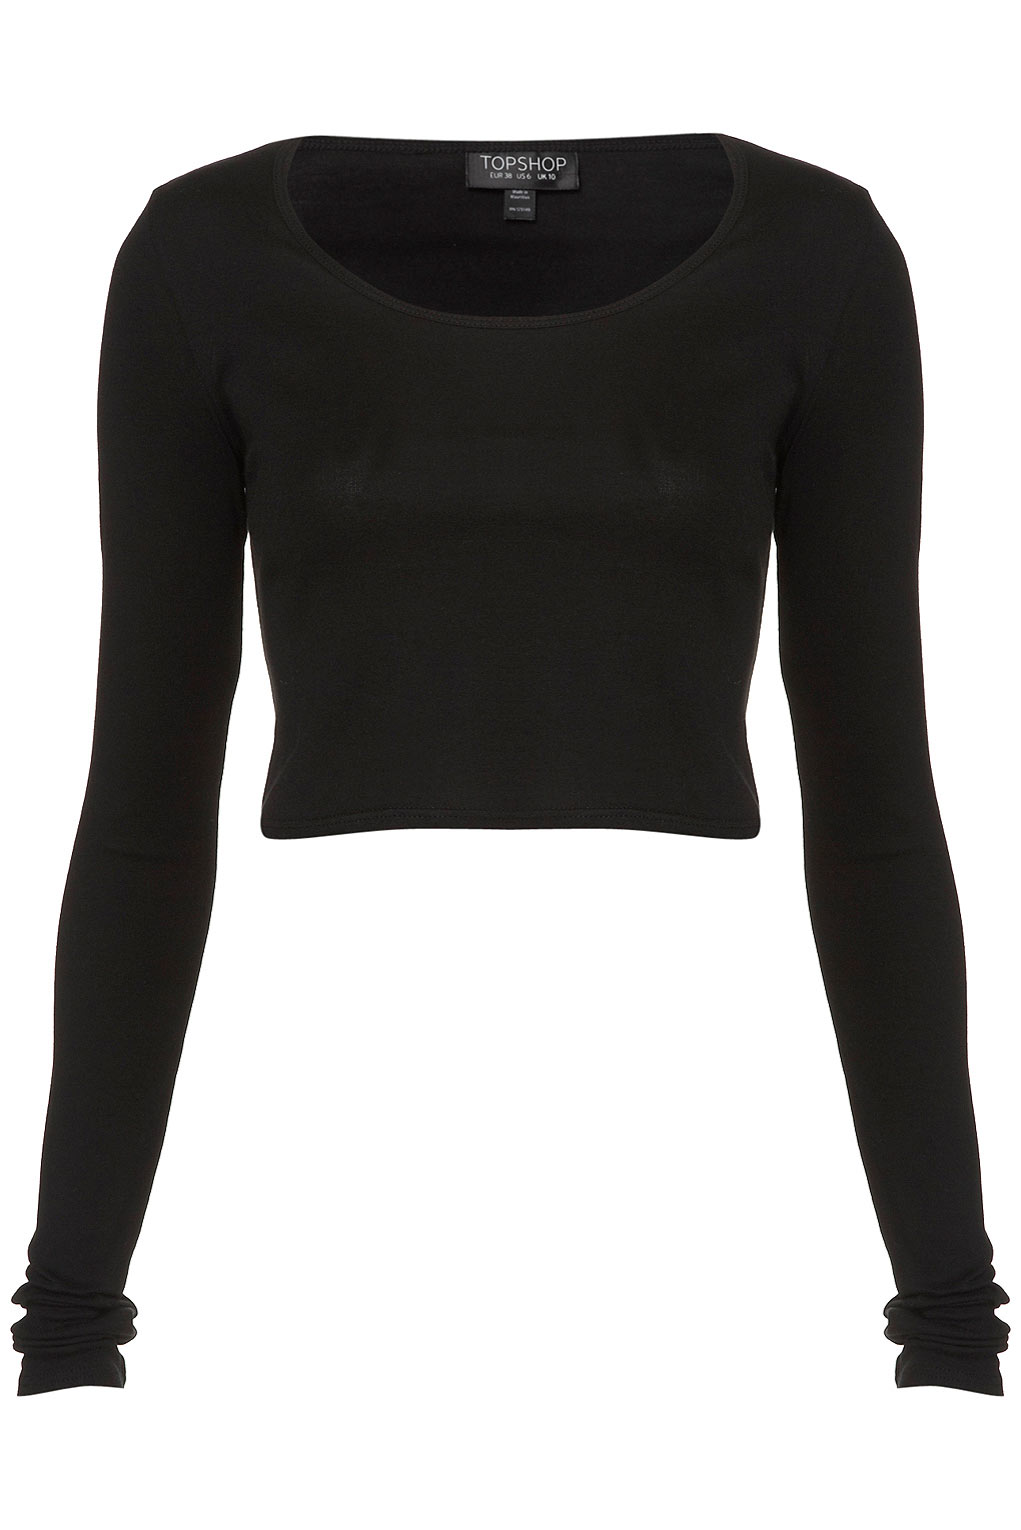 Find long sleeve cropped shirt at ShopStyle. Shop the latest collection of long sleeve cropped shirt from the most popular stores - all in one place.